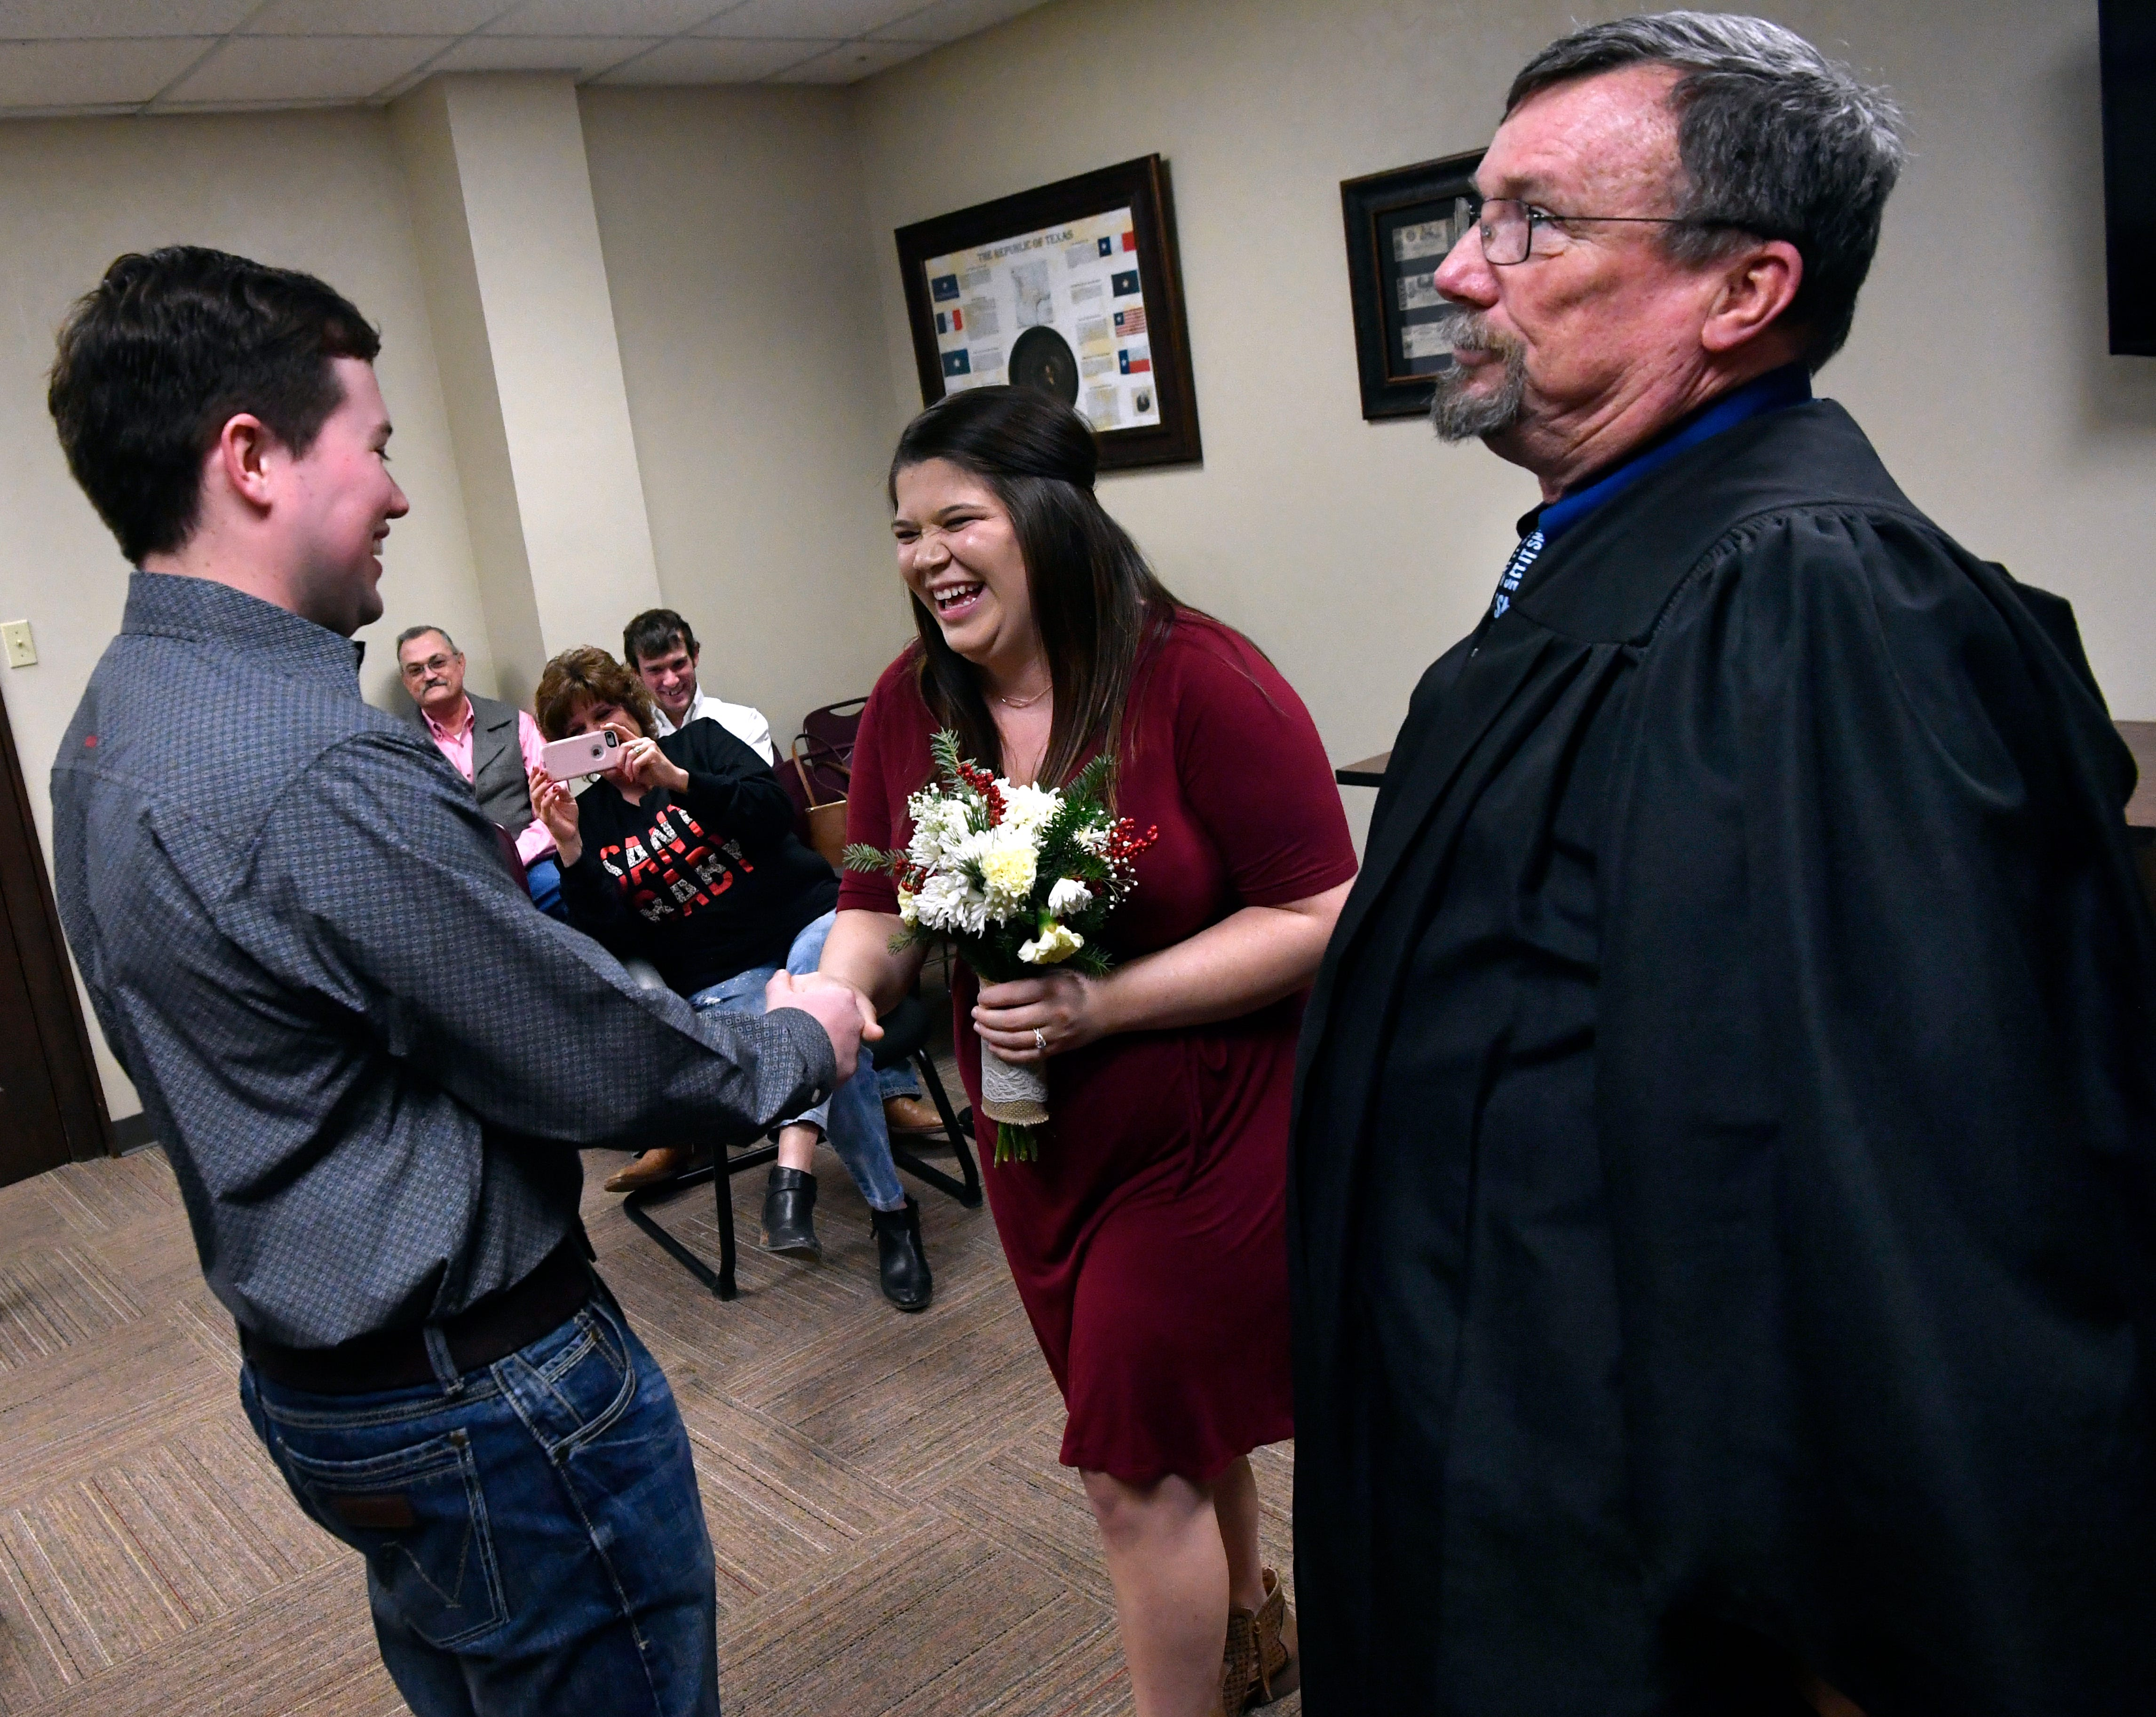 Taylor County Justice of the Peace Mike McAuliffe teases soon-to-be-newlyweds Eli Martin and Shayle Swink during their ceremony Friday in the basement courtroom of the former Taylor County courthouse. The 103-year-old building is being considered for renovation.